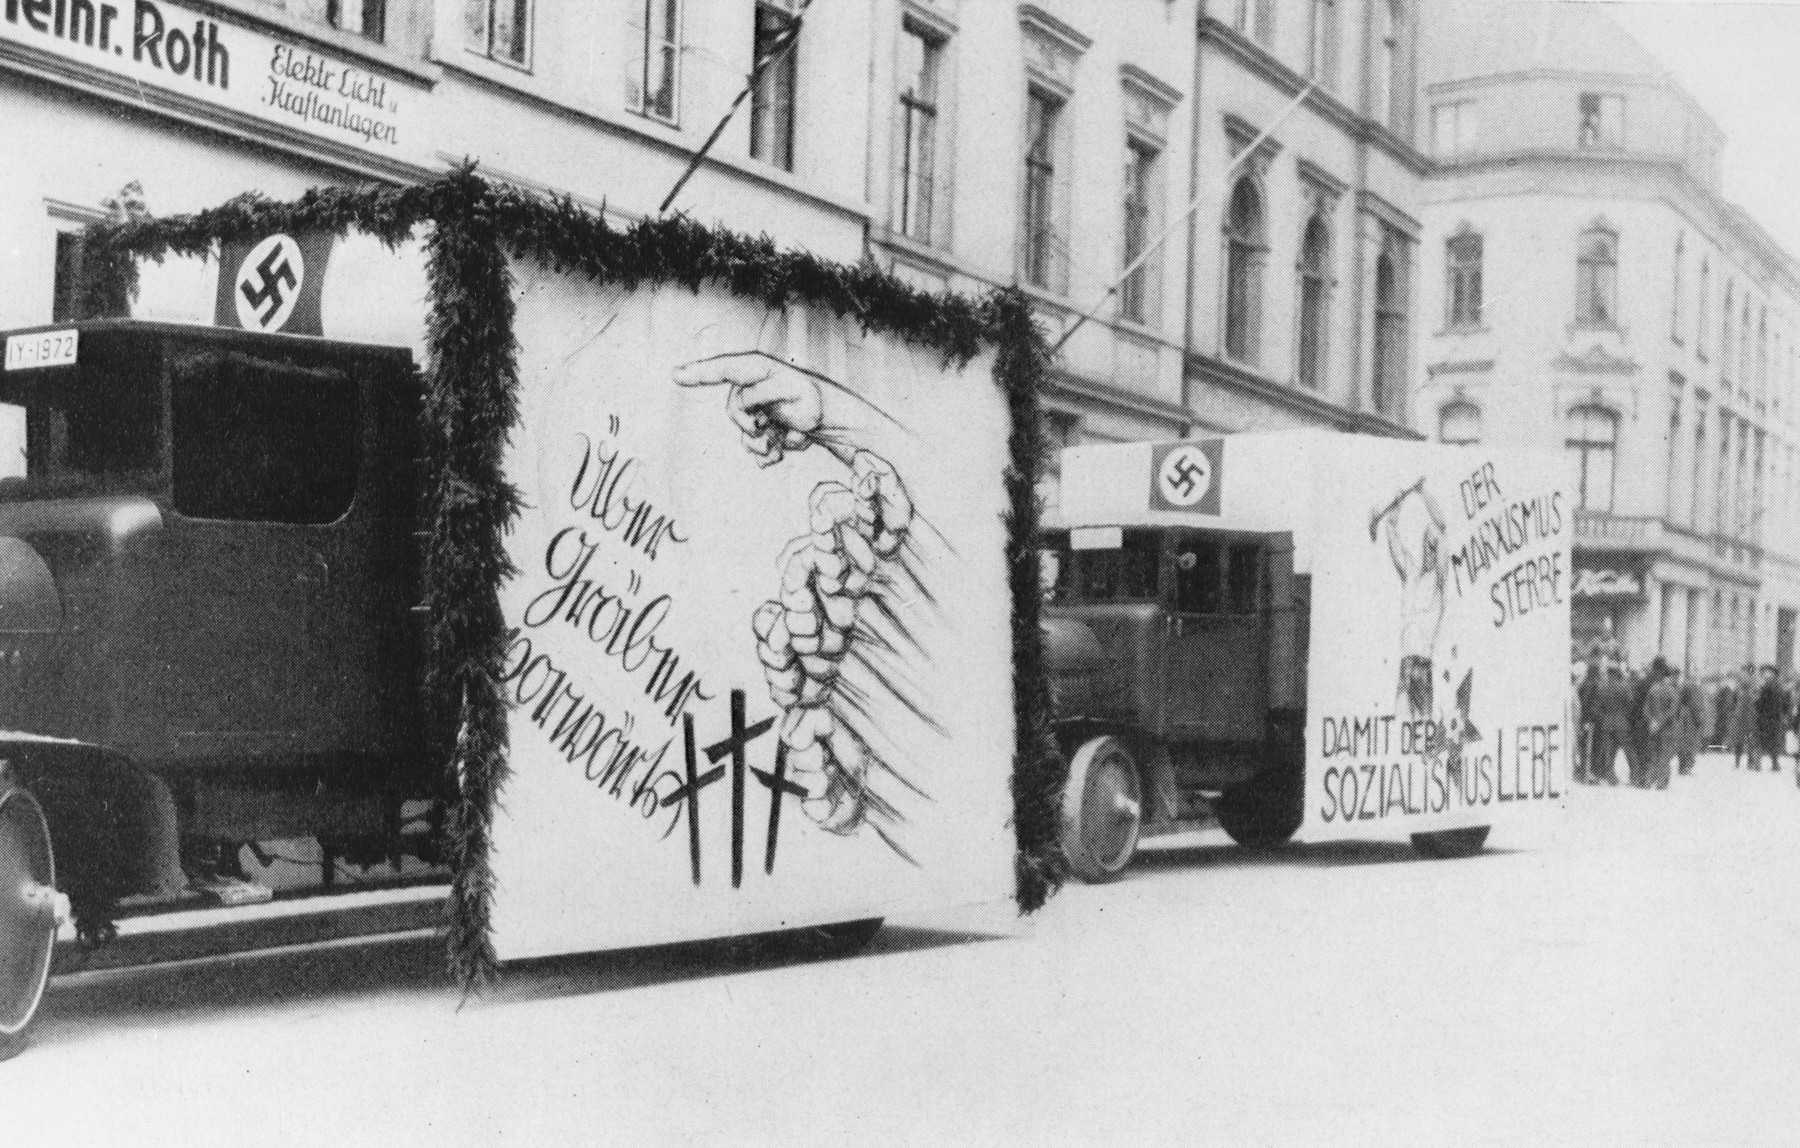 Nazi Party propaganda trucks in the streets of Berlin during a Reichstag election.